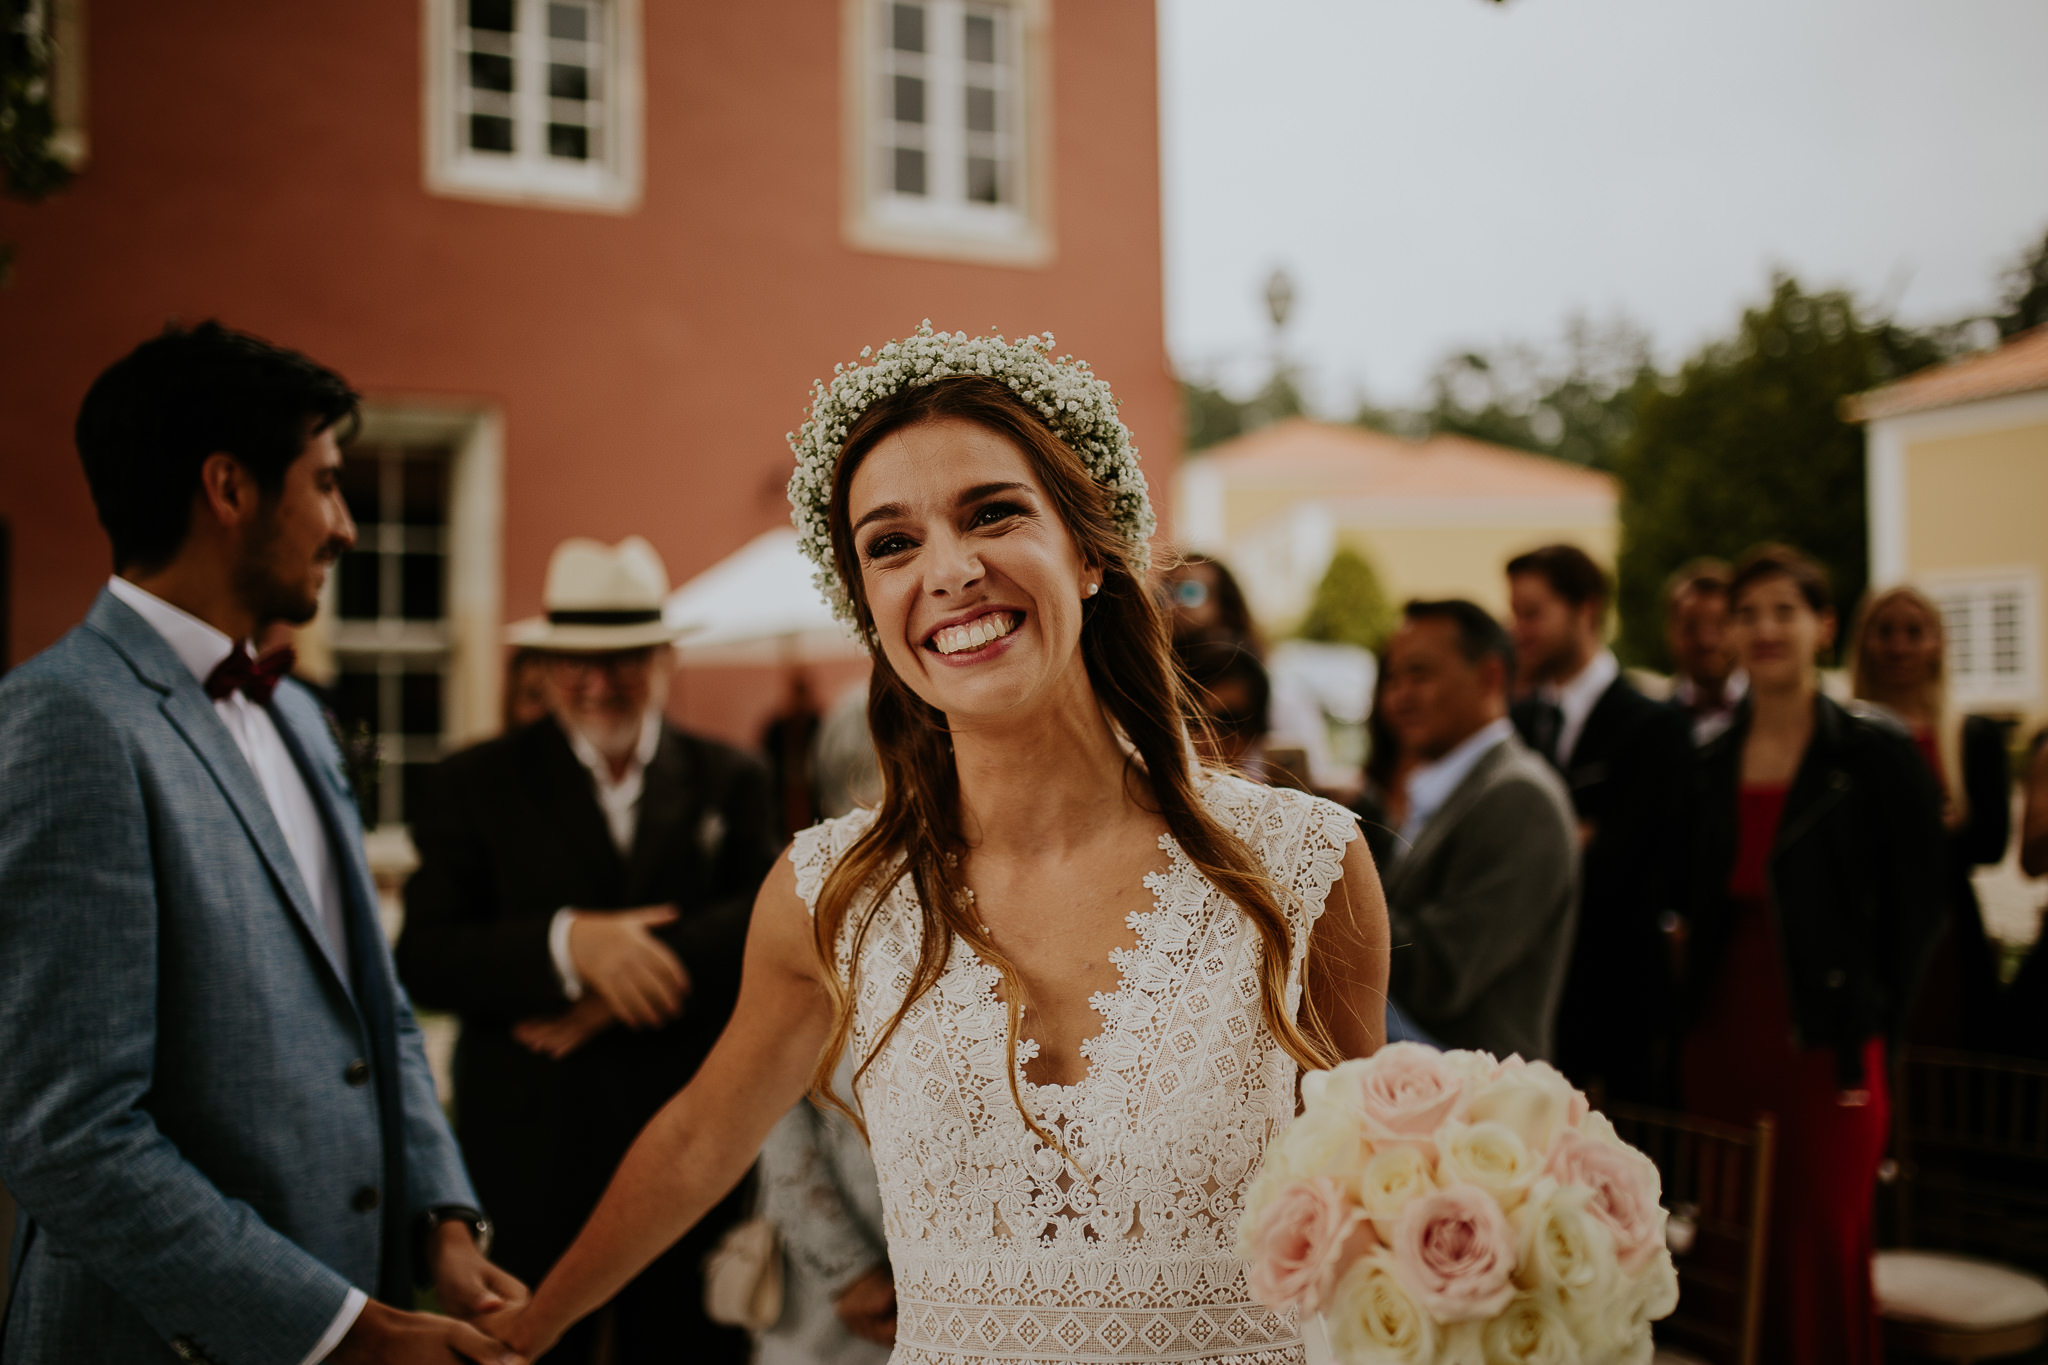 romina_thomas_destination_wedding_photography_fotografia_de_casamento_lisbon_sintra_penha_longa_resort-31